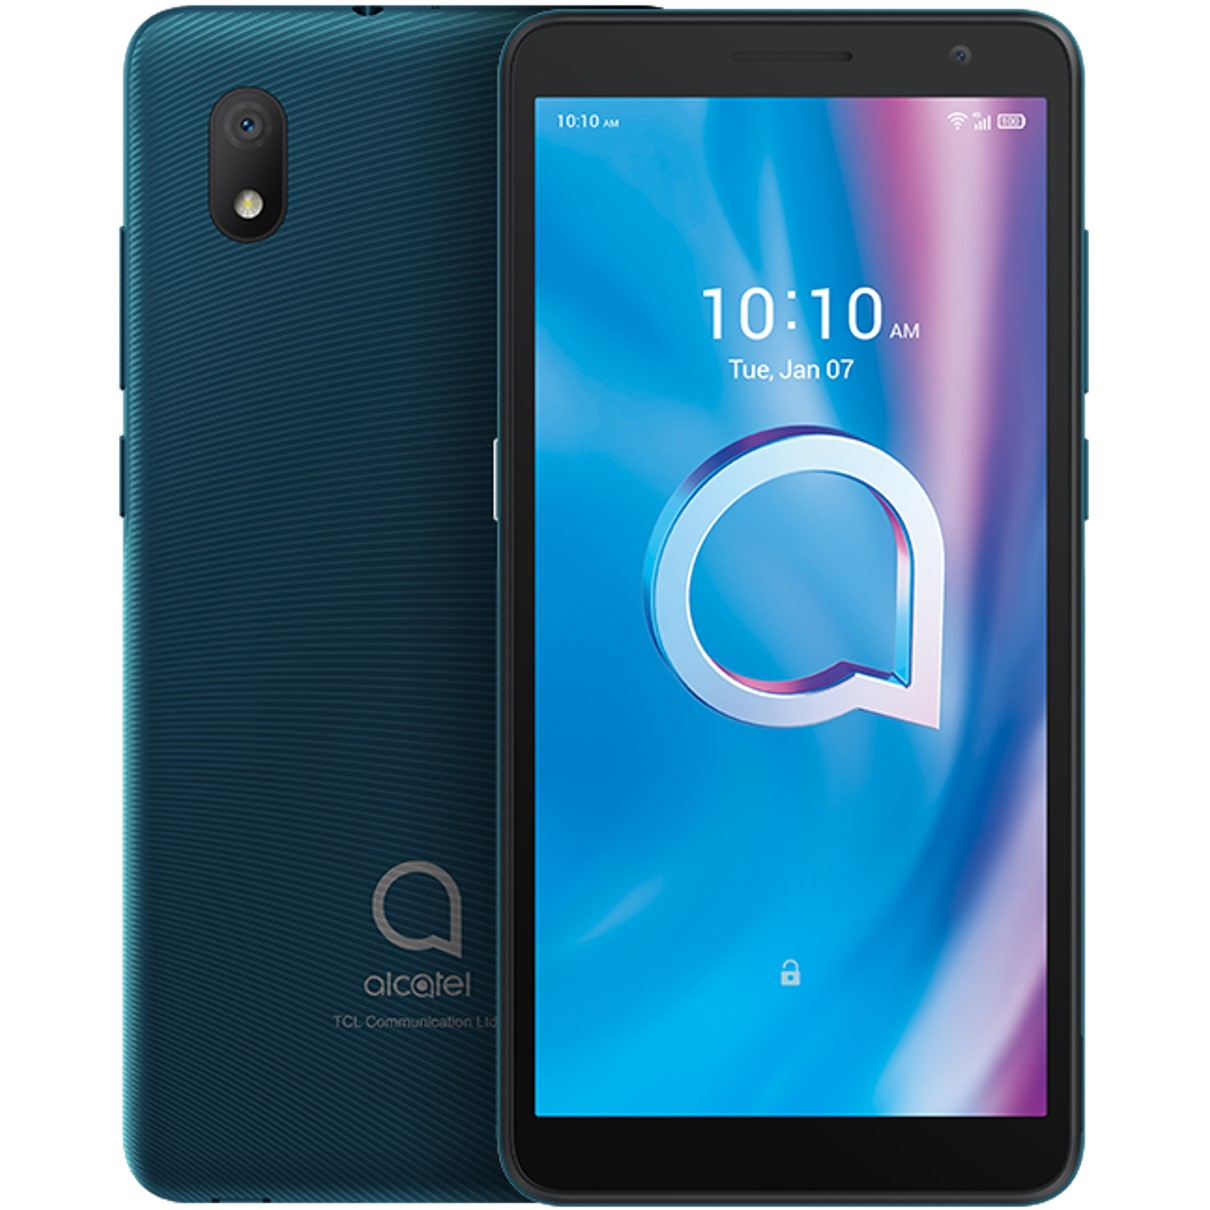 "TELEFONO MOVIL SMARTPHONE ALCATEL 1B PINE GREEN/ 5.5""/ QUAD CORE/ 16GB ROM/ 2GB RAM/ 8MPX - 5MPX/ 4G/ DUAL SIM"